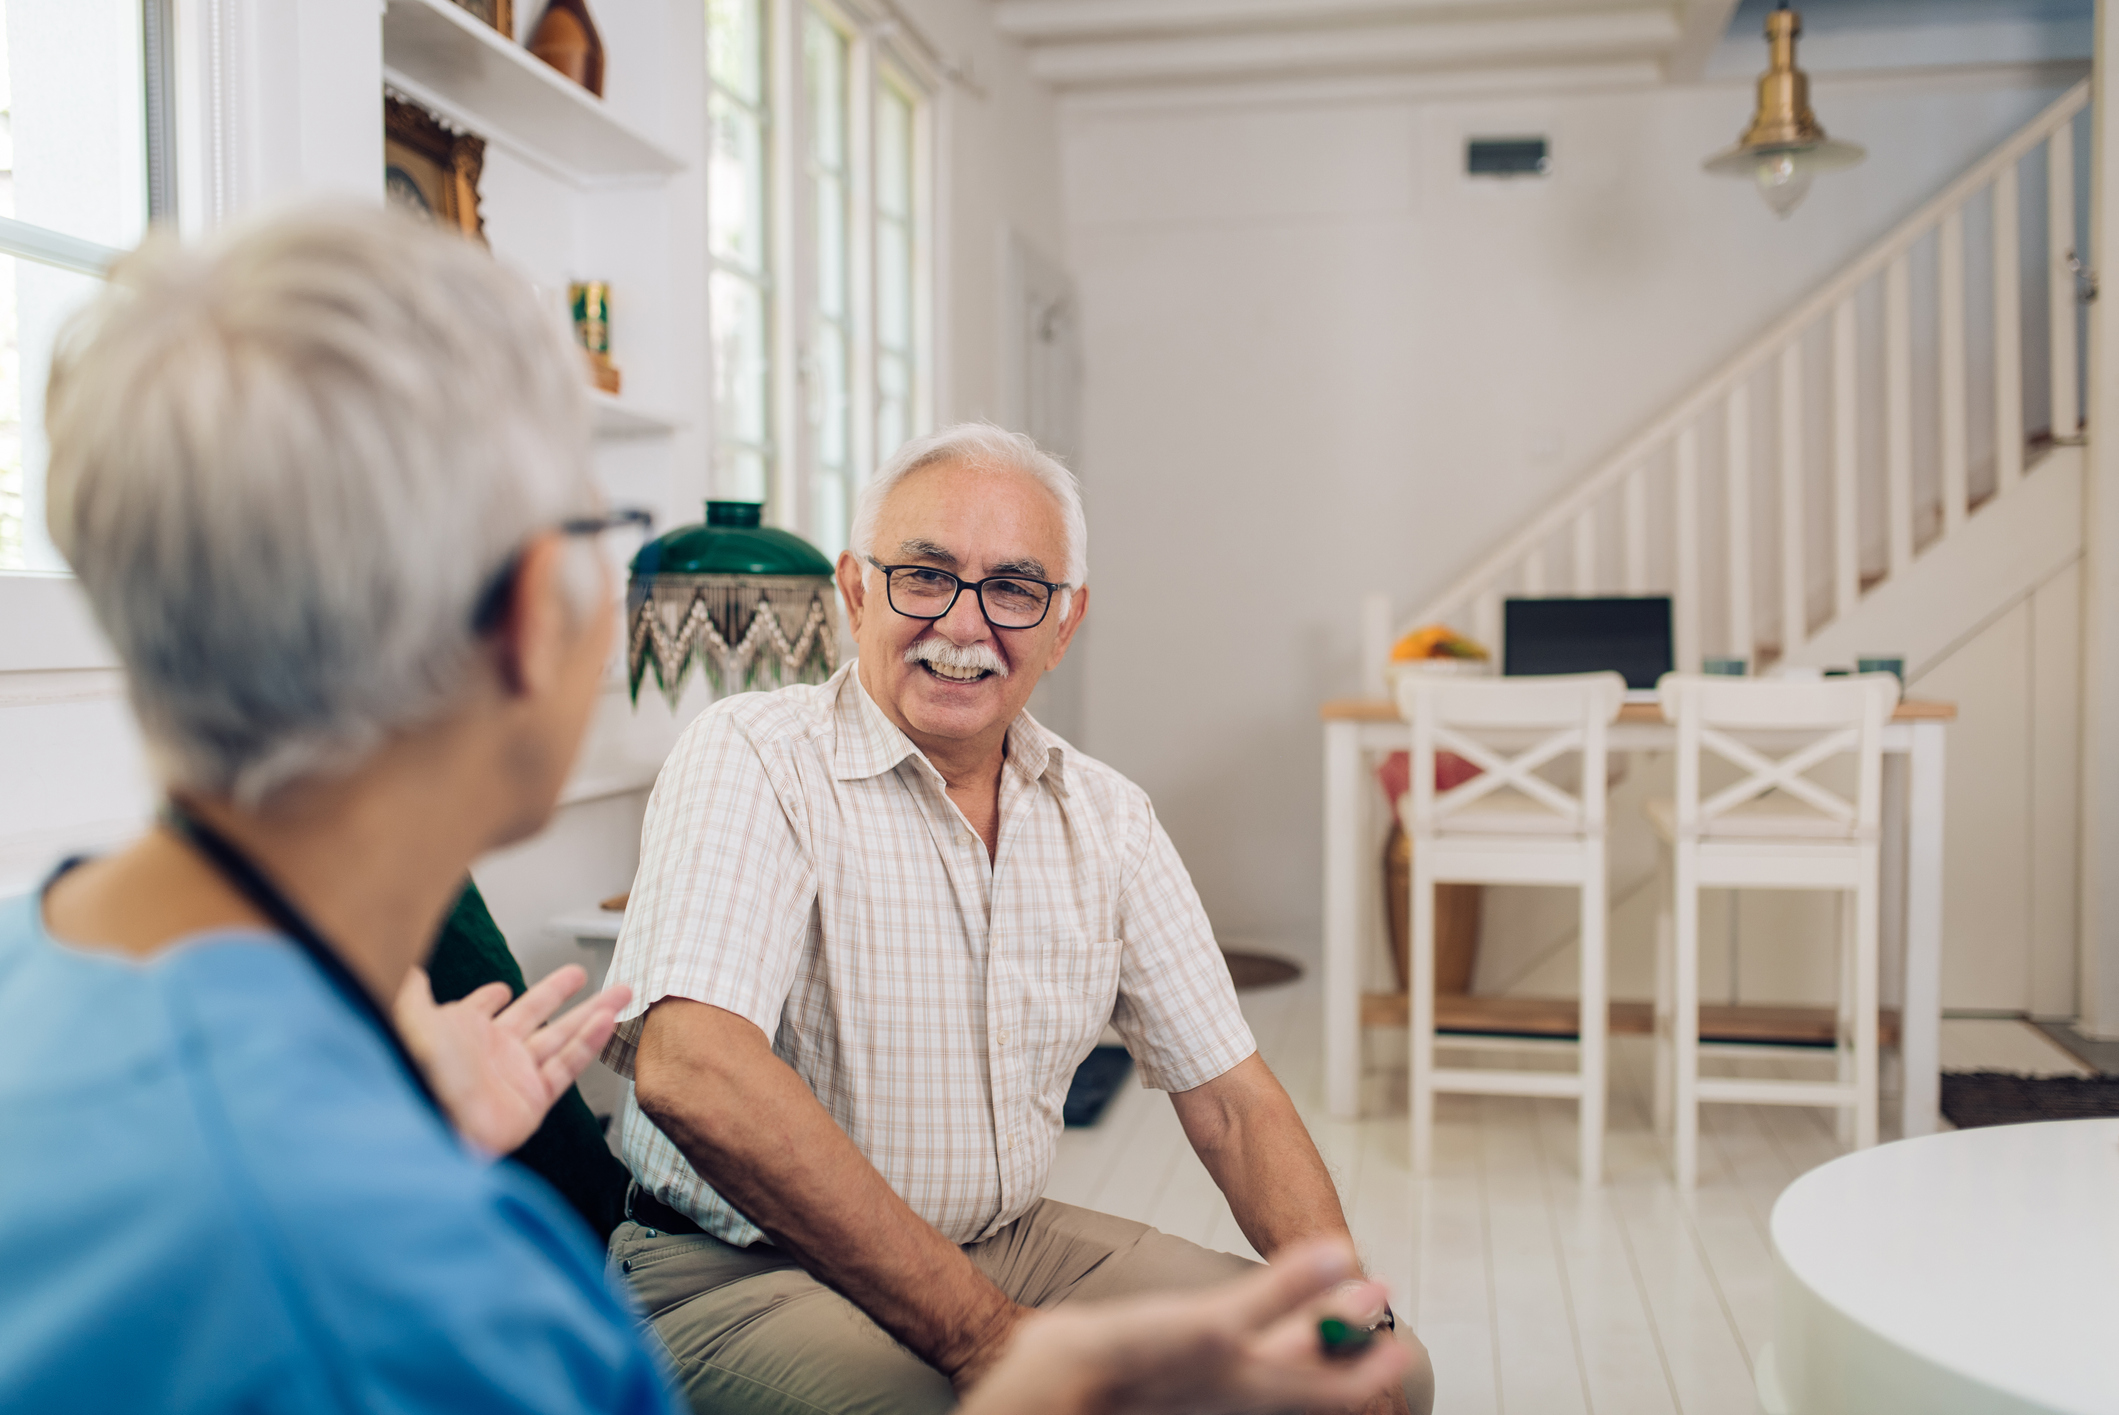 Elderly care solutions can begin with an in-home care consultation.